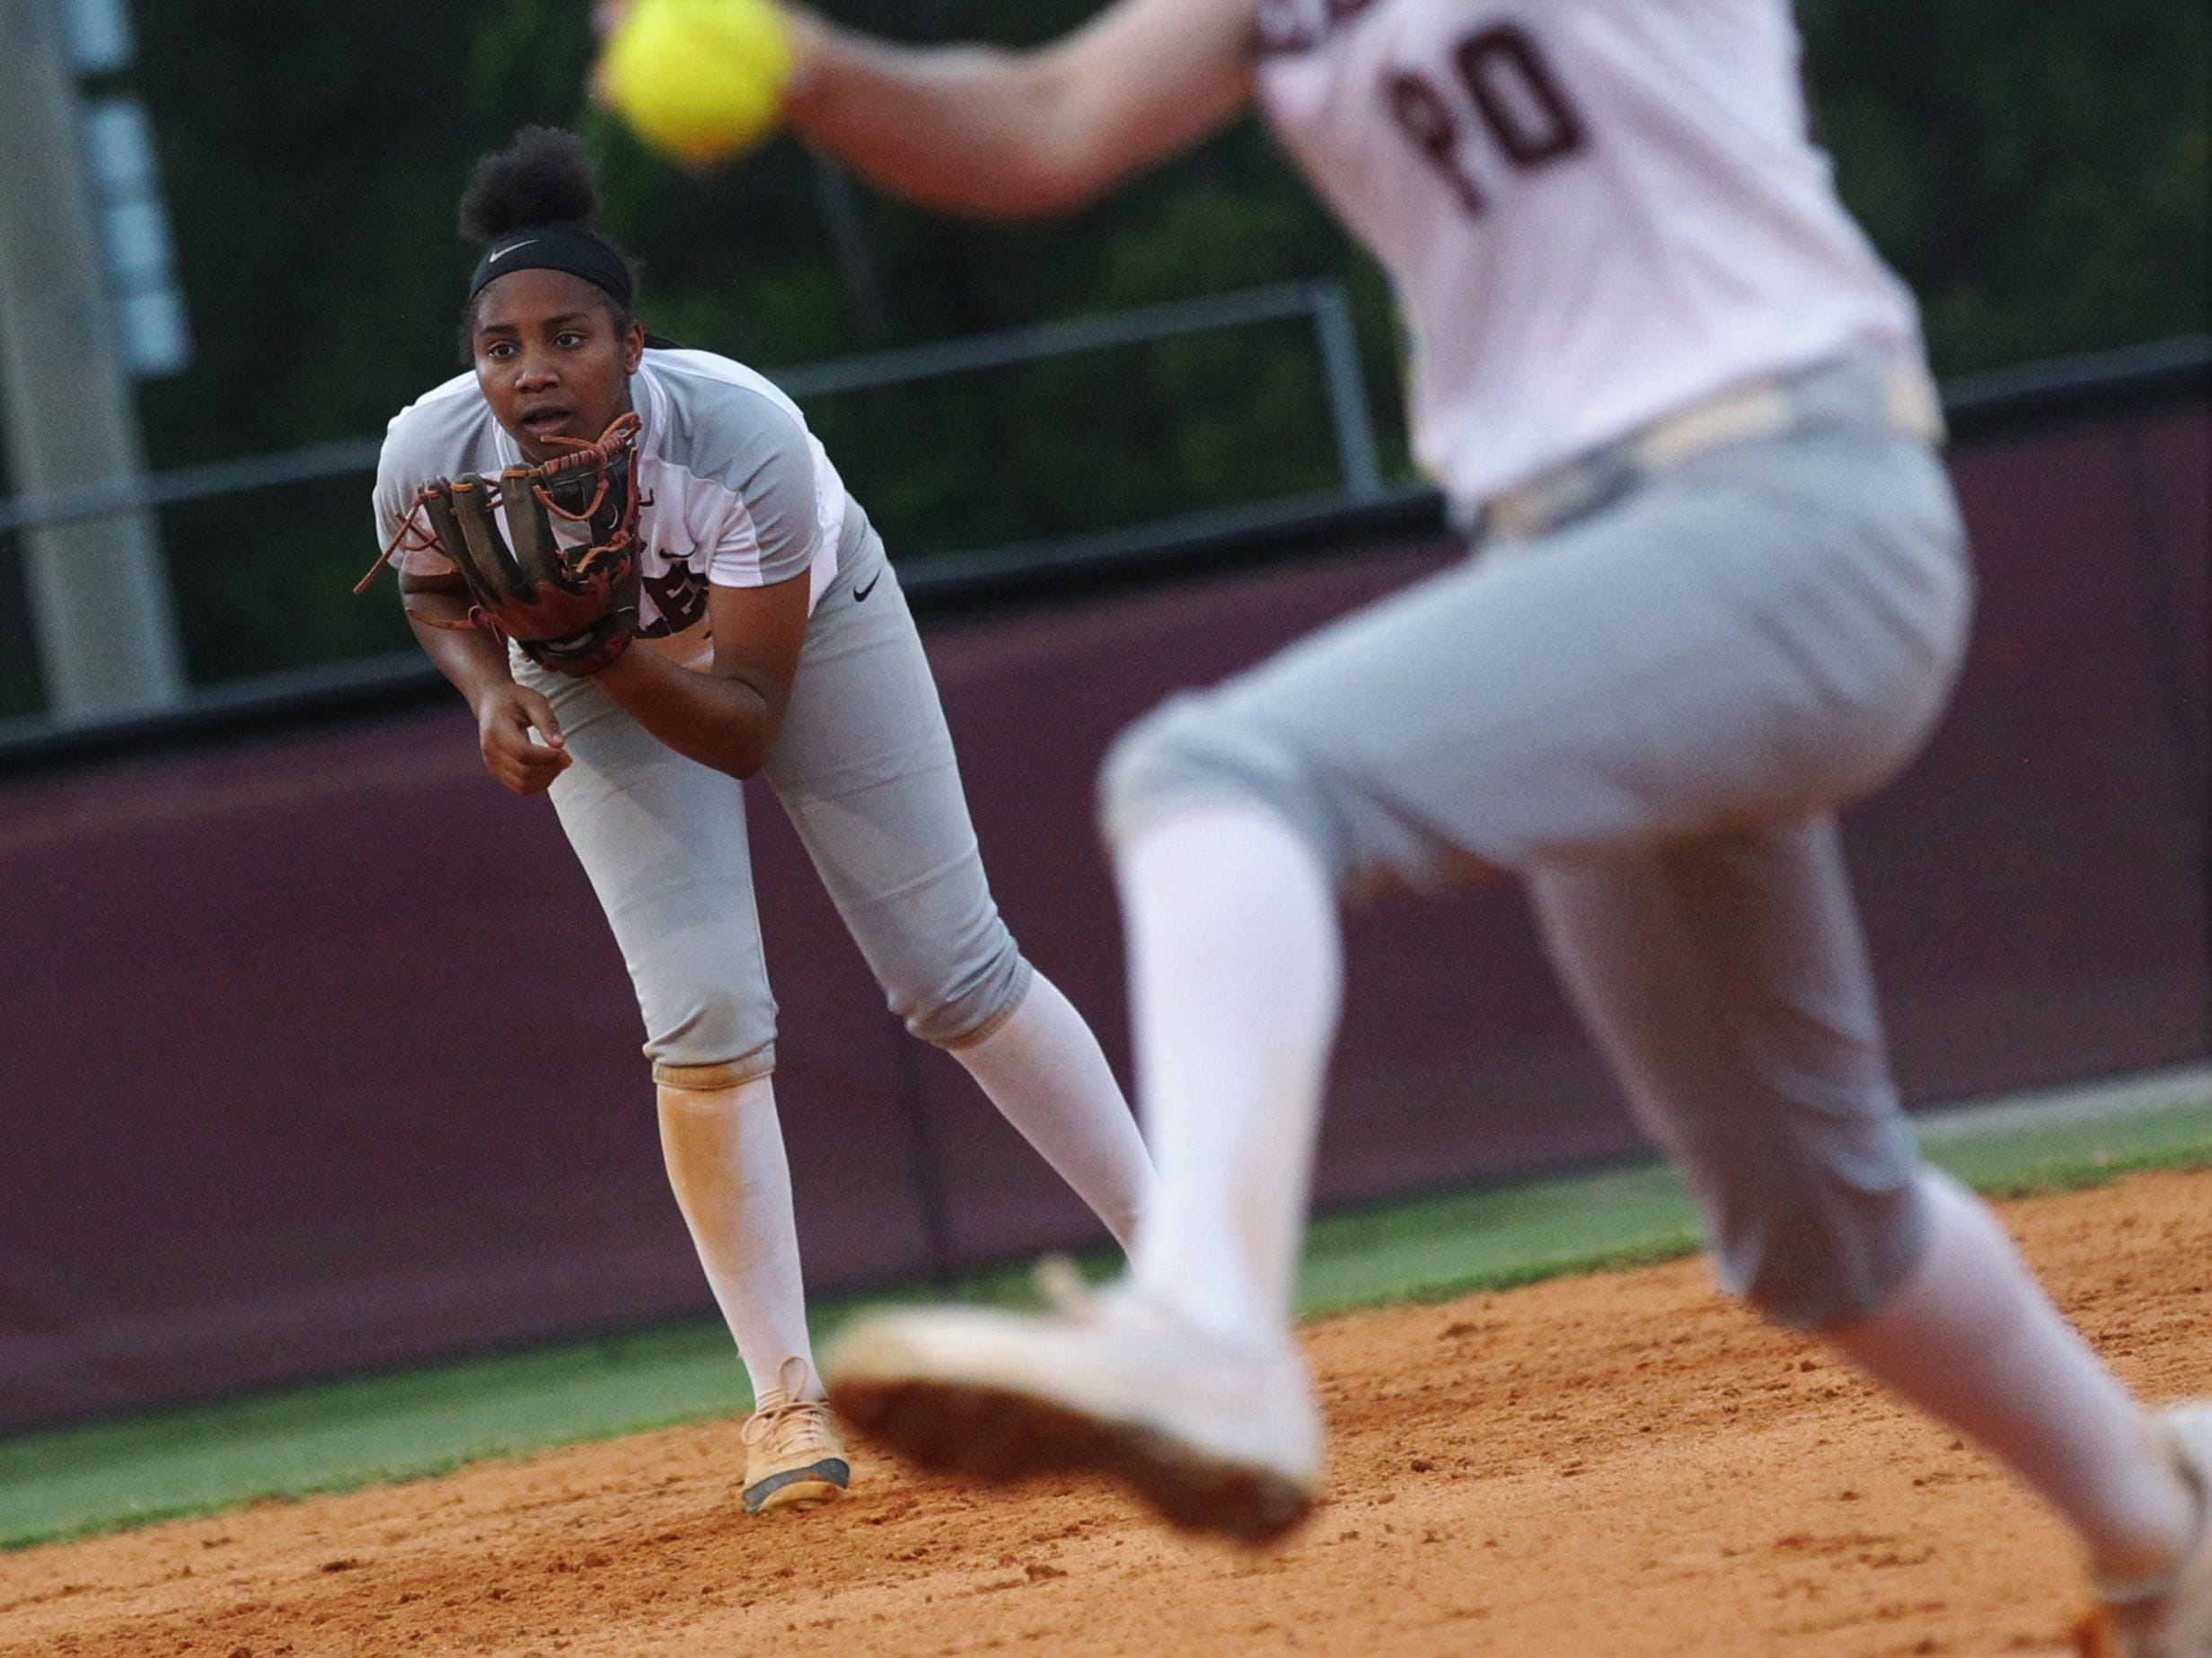 Chiles junior Amaya Gainer prepares defensively at shortstop as the Timberwolves beat Atlantic Coast 6-4 during a Region 1-8A quarterfinal softball game on Wednesday, May 8, 2019.